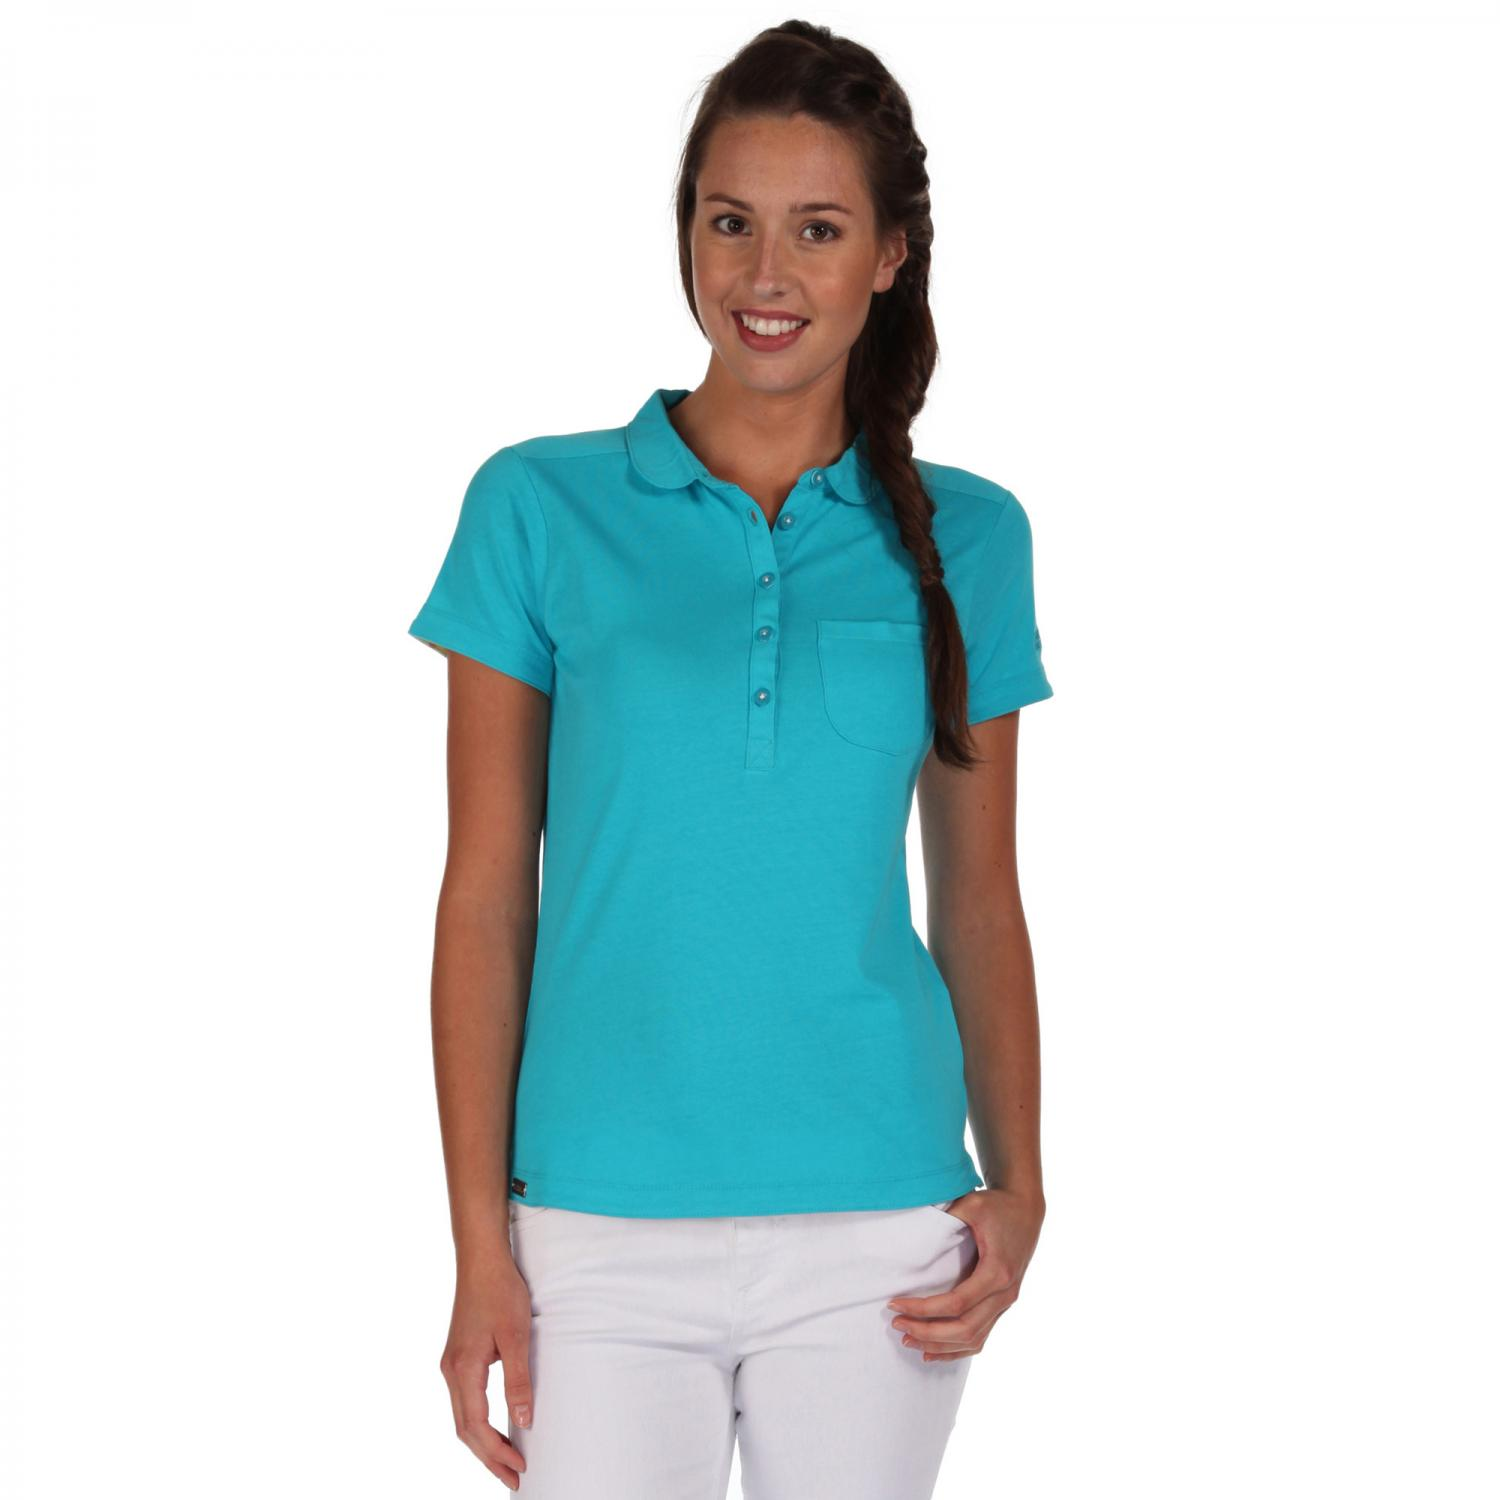 Fortunella Polo Shirt Aqua